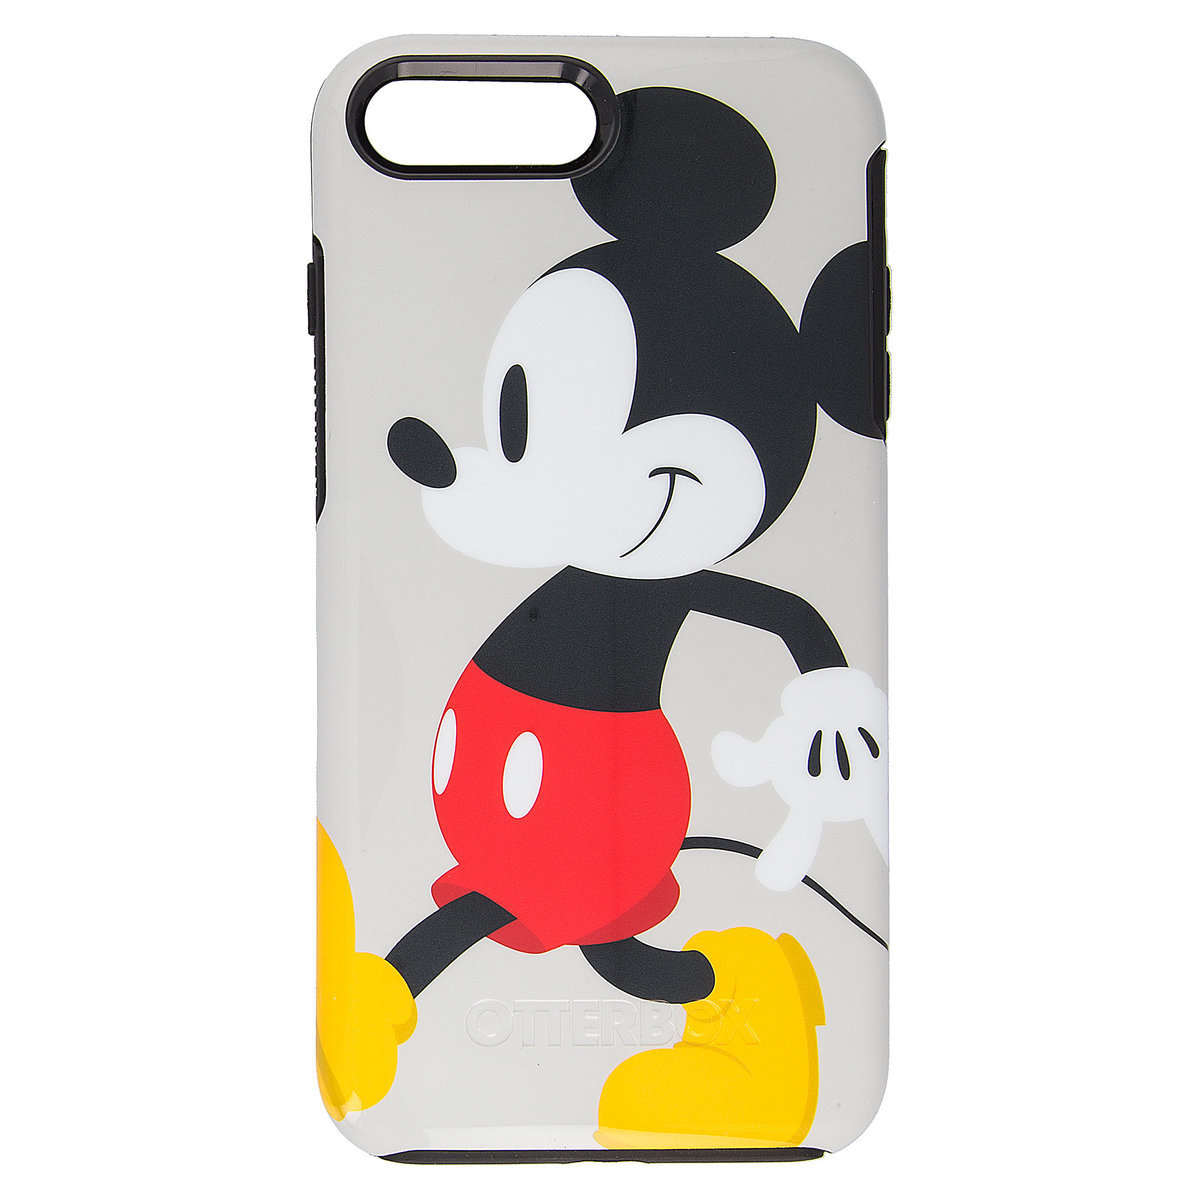 size 40 32533 9f9a5 Mickey Mouse OtterBox Symmetry iPhone 8/7 Plus Case